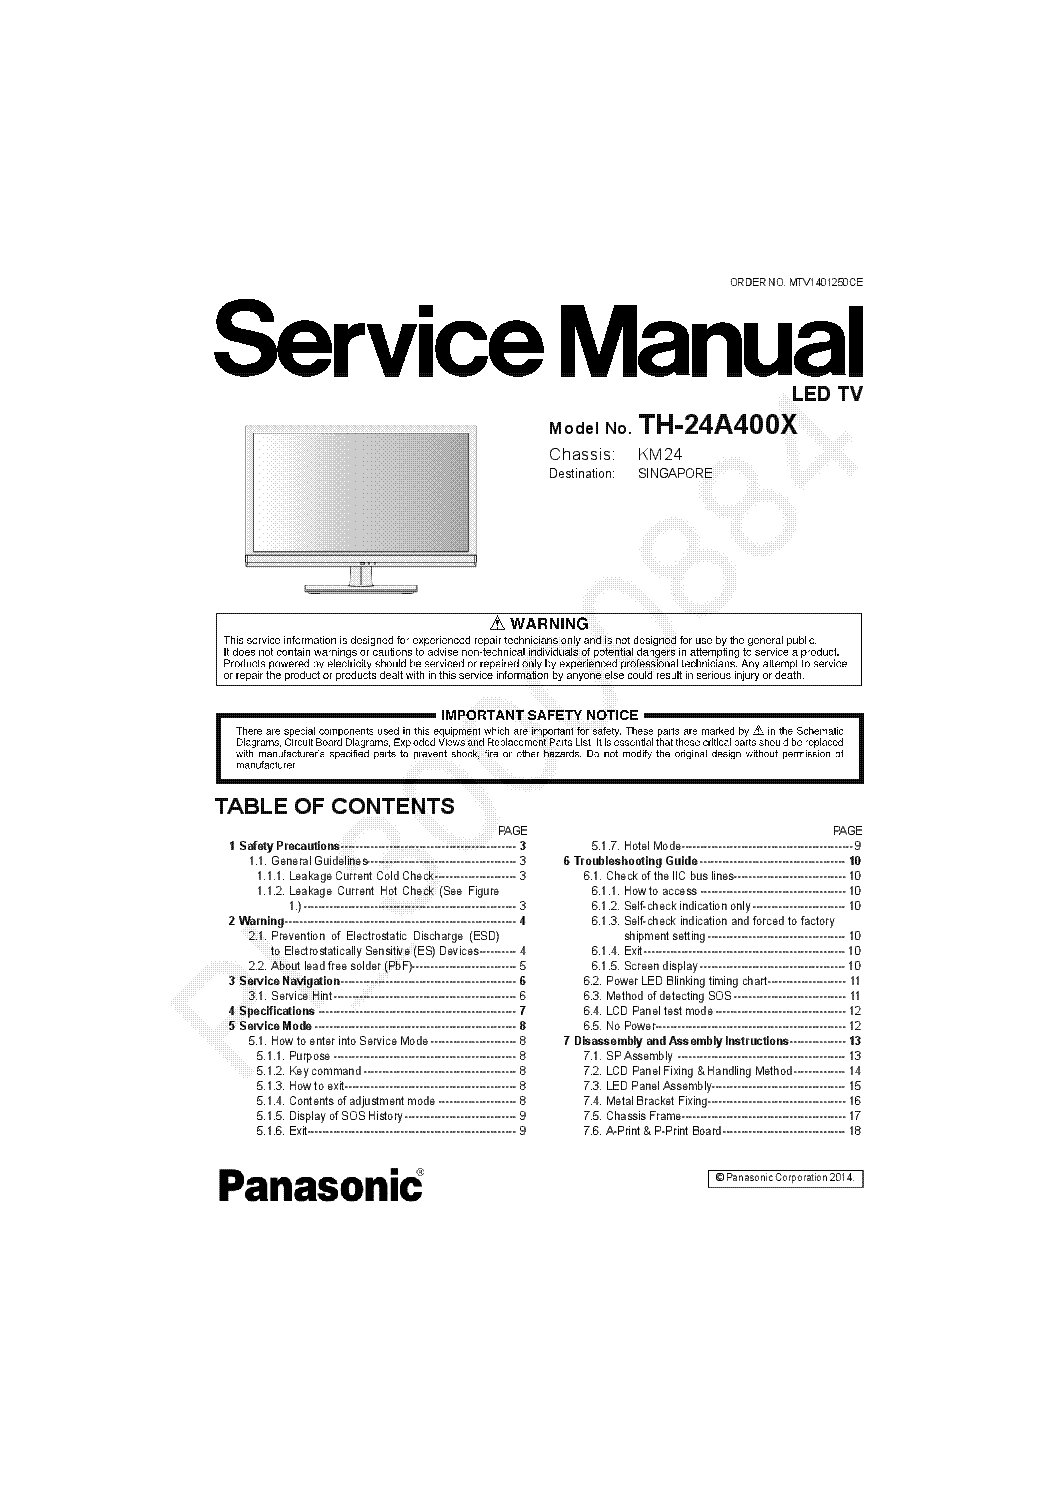 Panasonic Tc21z88rq Ch Gp 3 Service Manual Download Schematics Tv Circuit Board Repair